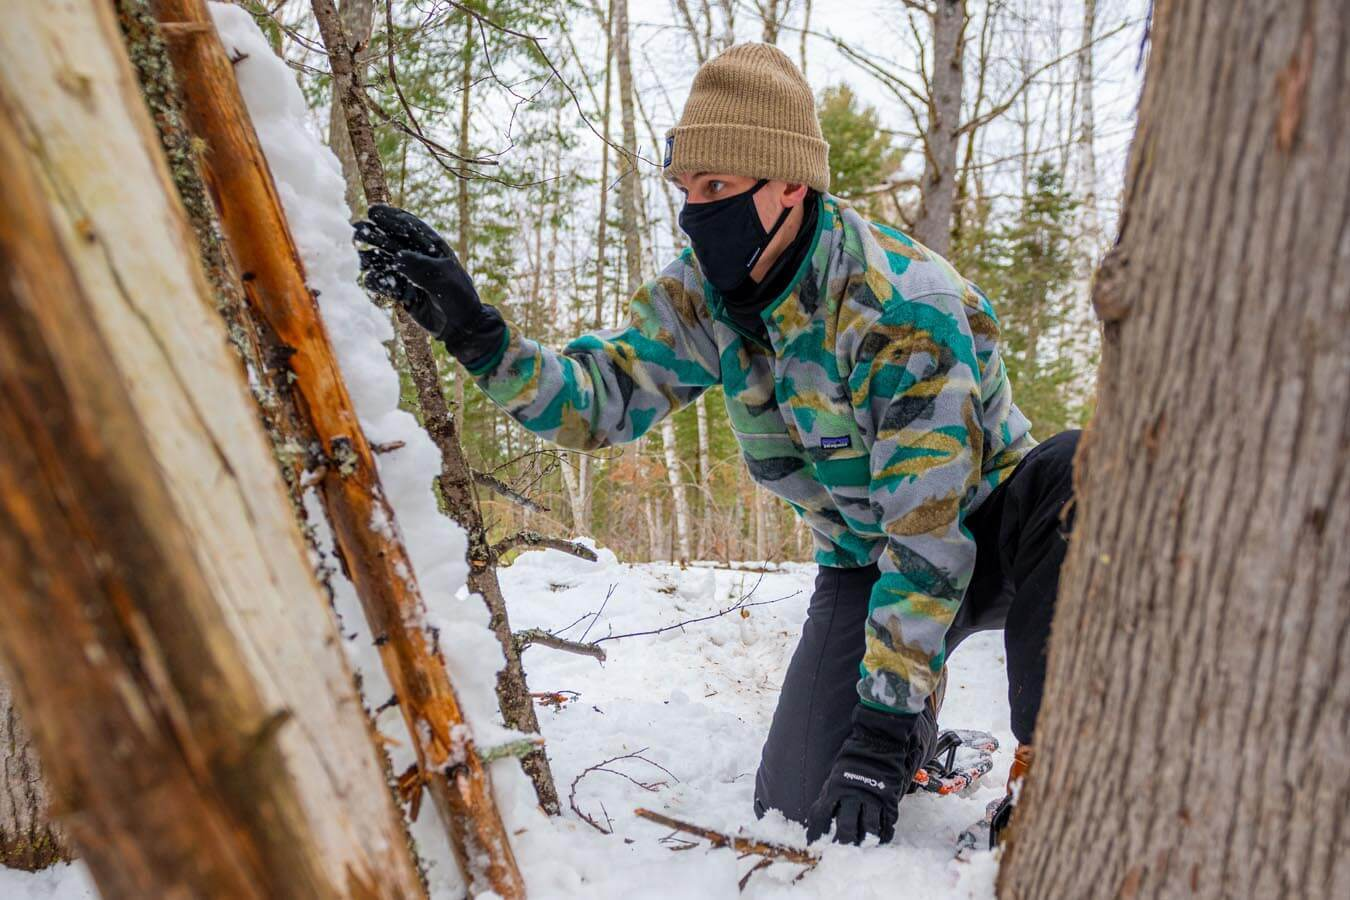 An outdoor leadership student builds a snow shelter in Demeritt Forest.